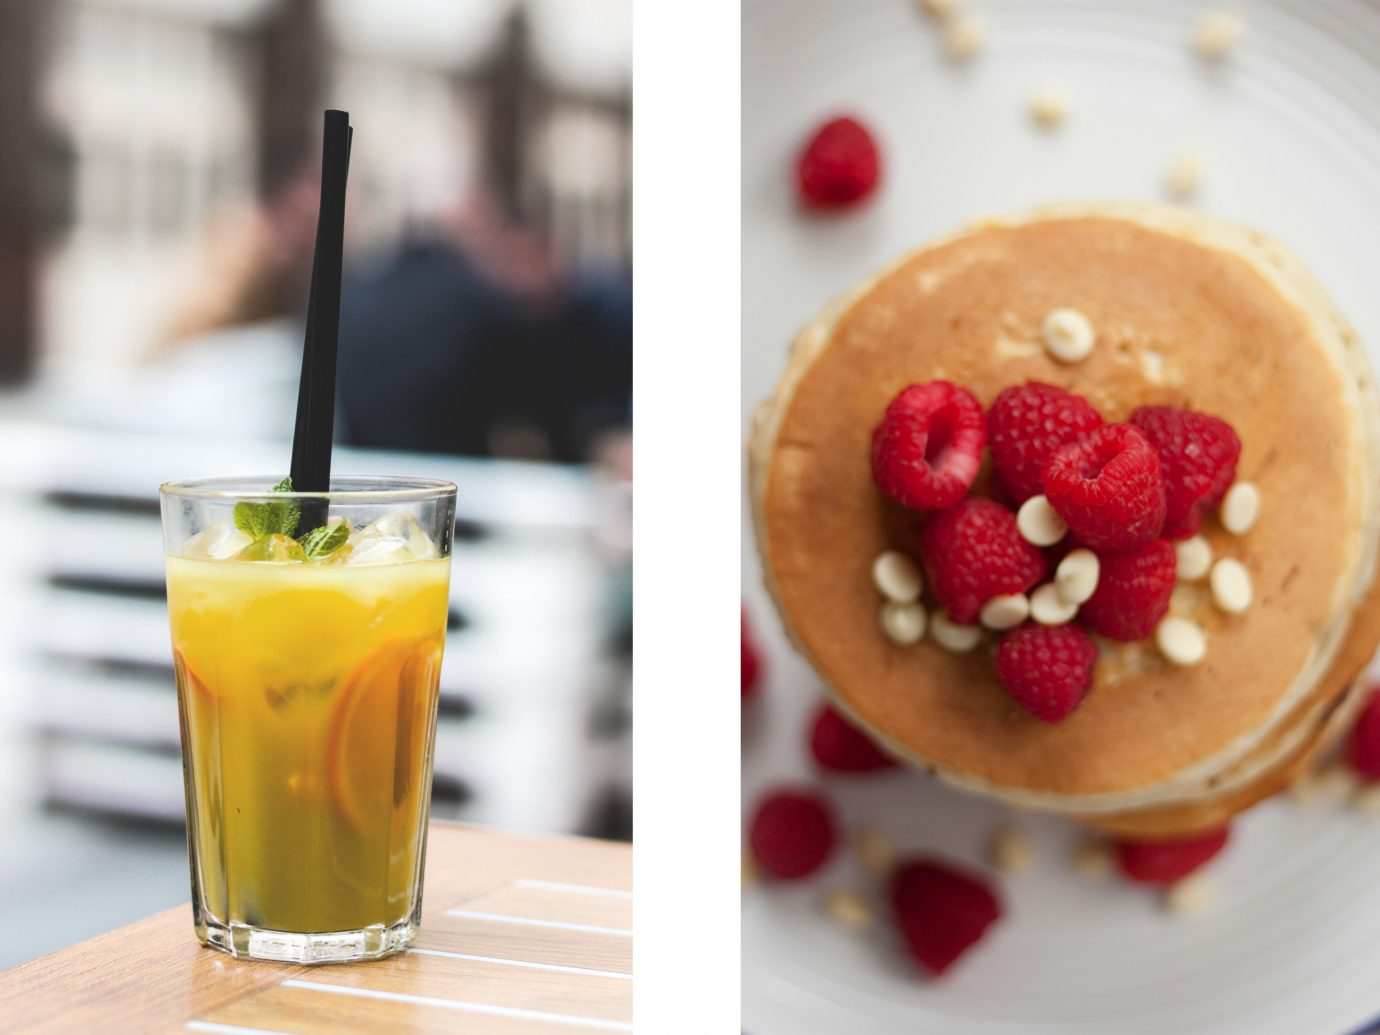 Trip Ideas cup food meal dish breakfast produce glass dessert Drink smoothie beverage flavor